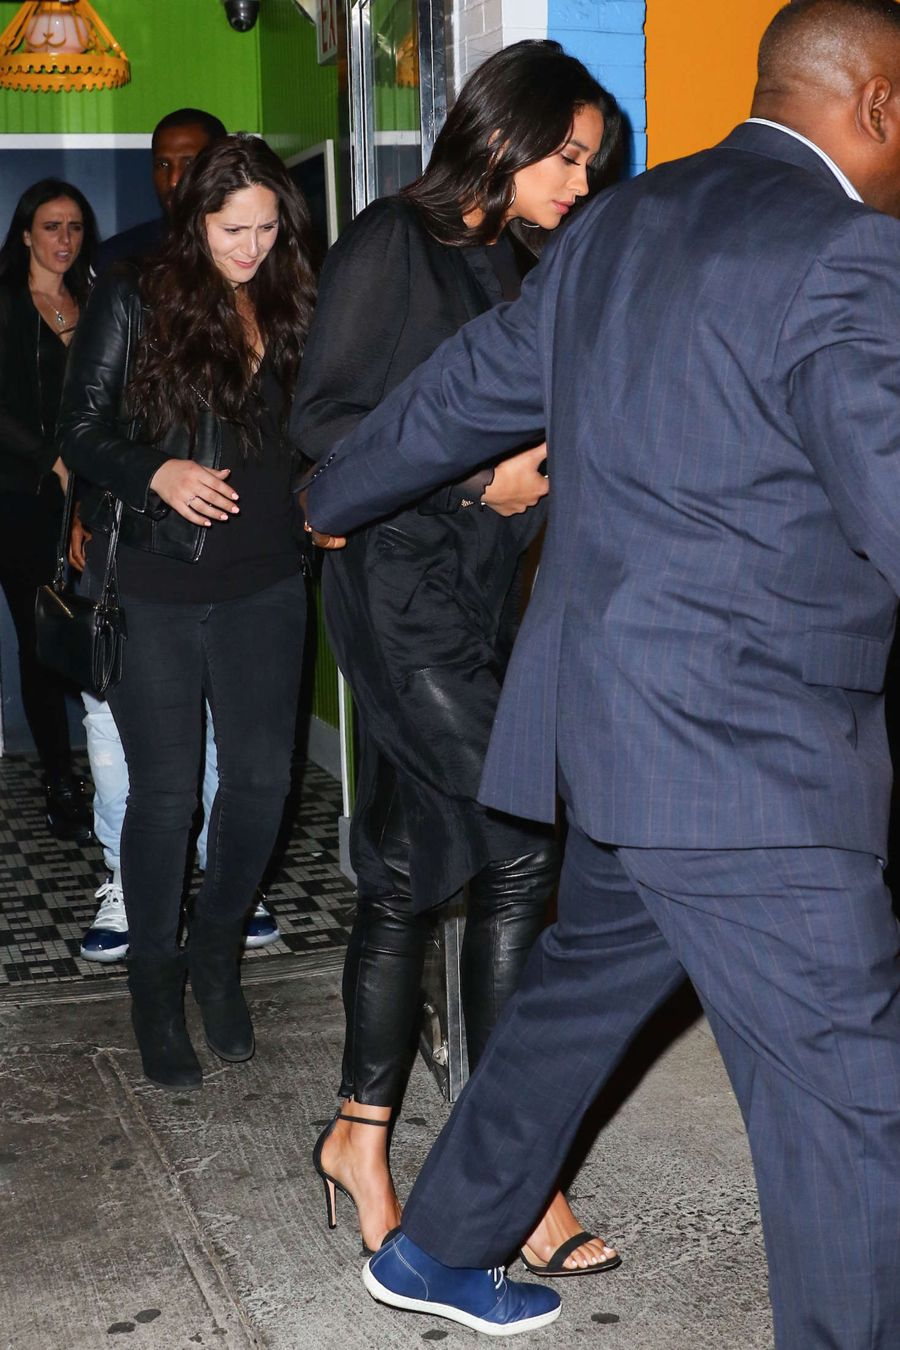 Shay Mitchell's Night Out with Beau in New York